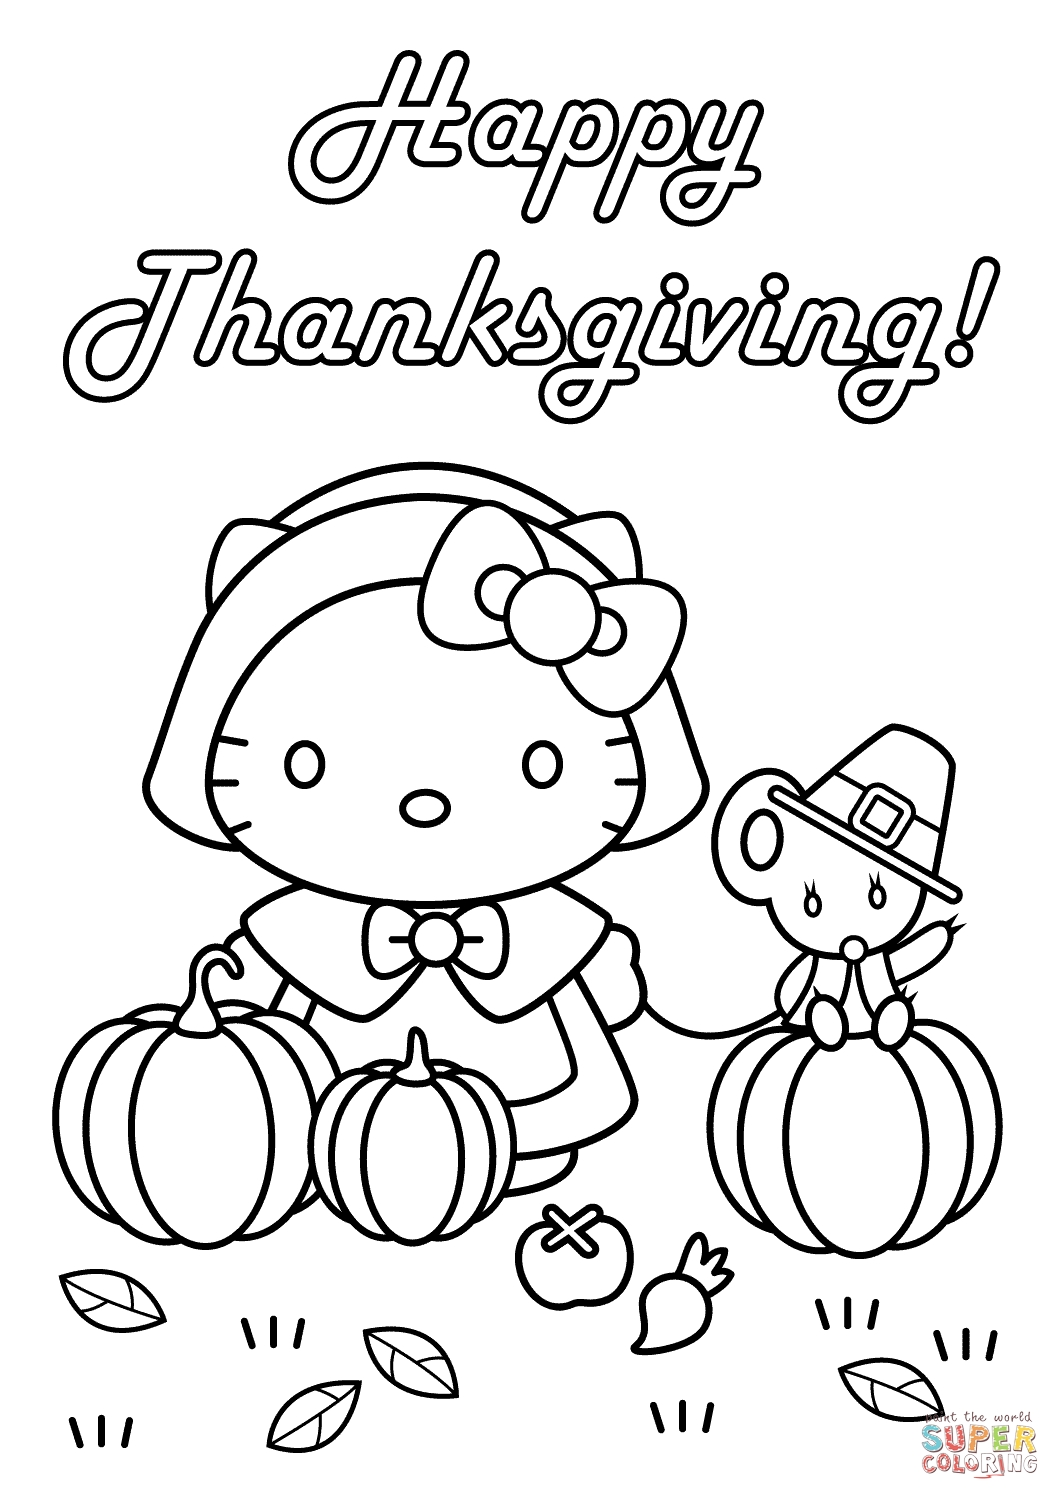 1060x1500 Awesome Dora Happy Birthday Coloring Pages Free Bell Rehwoldt